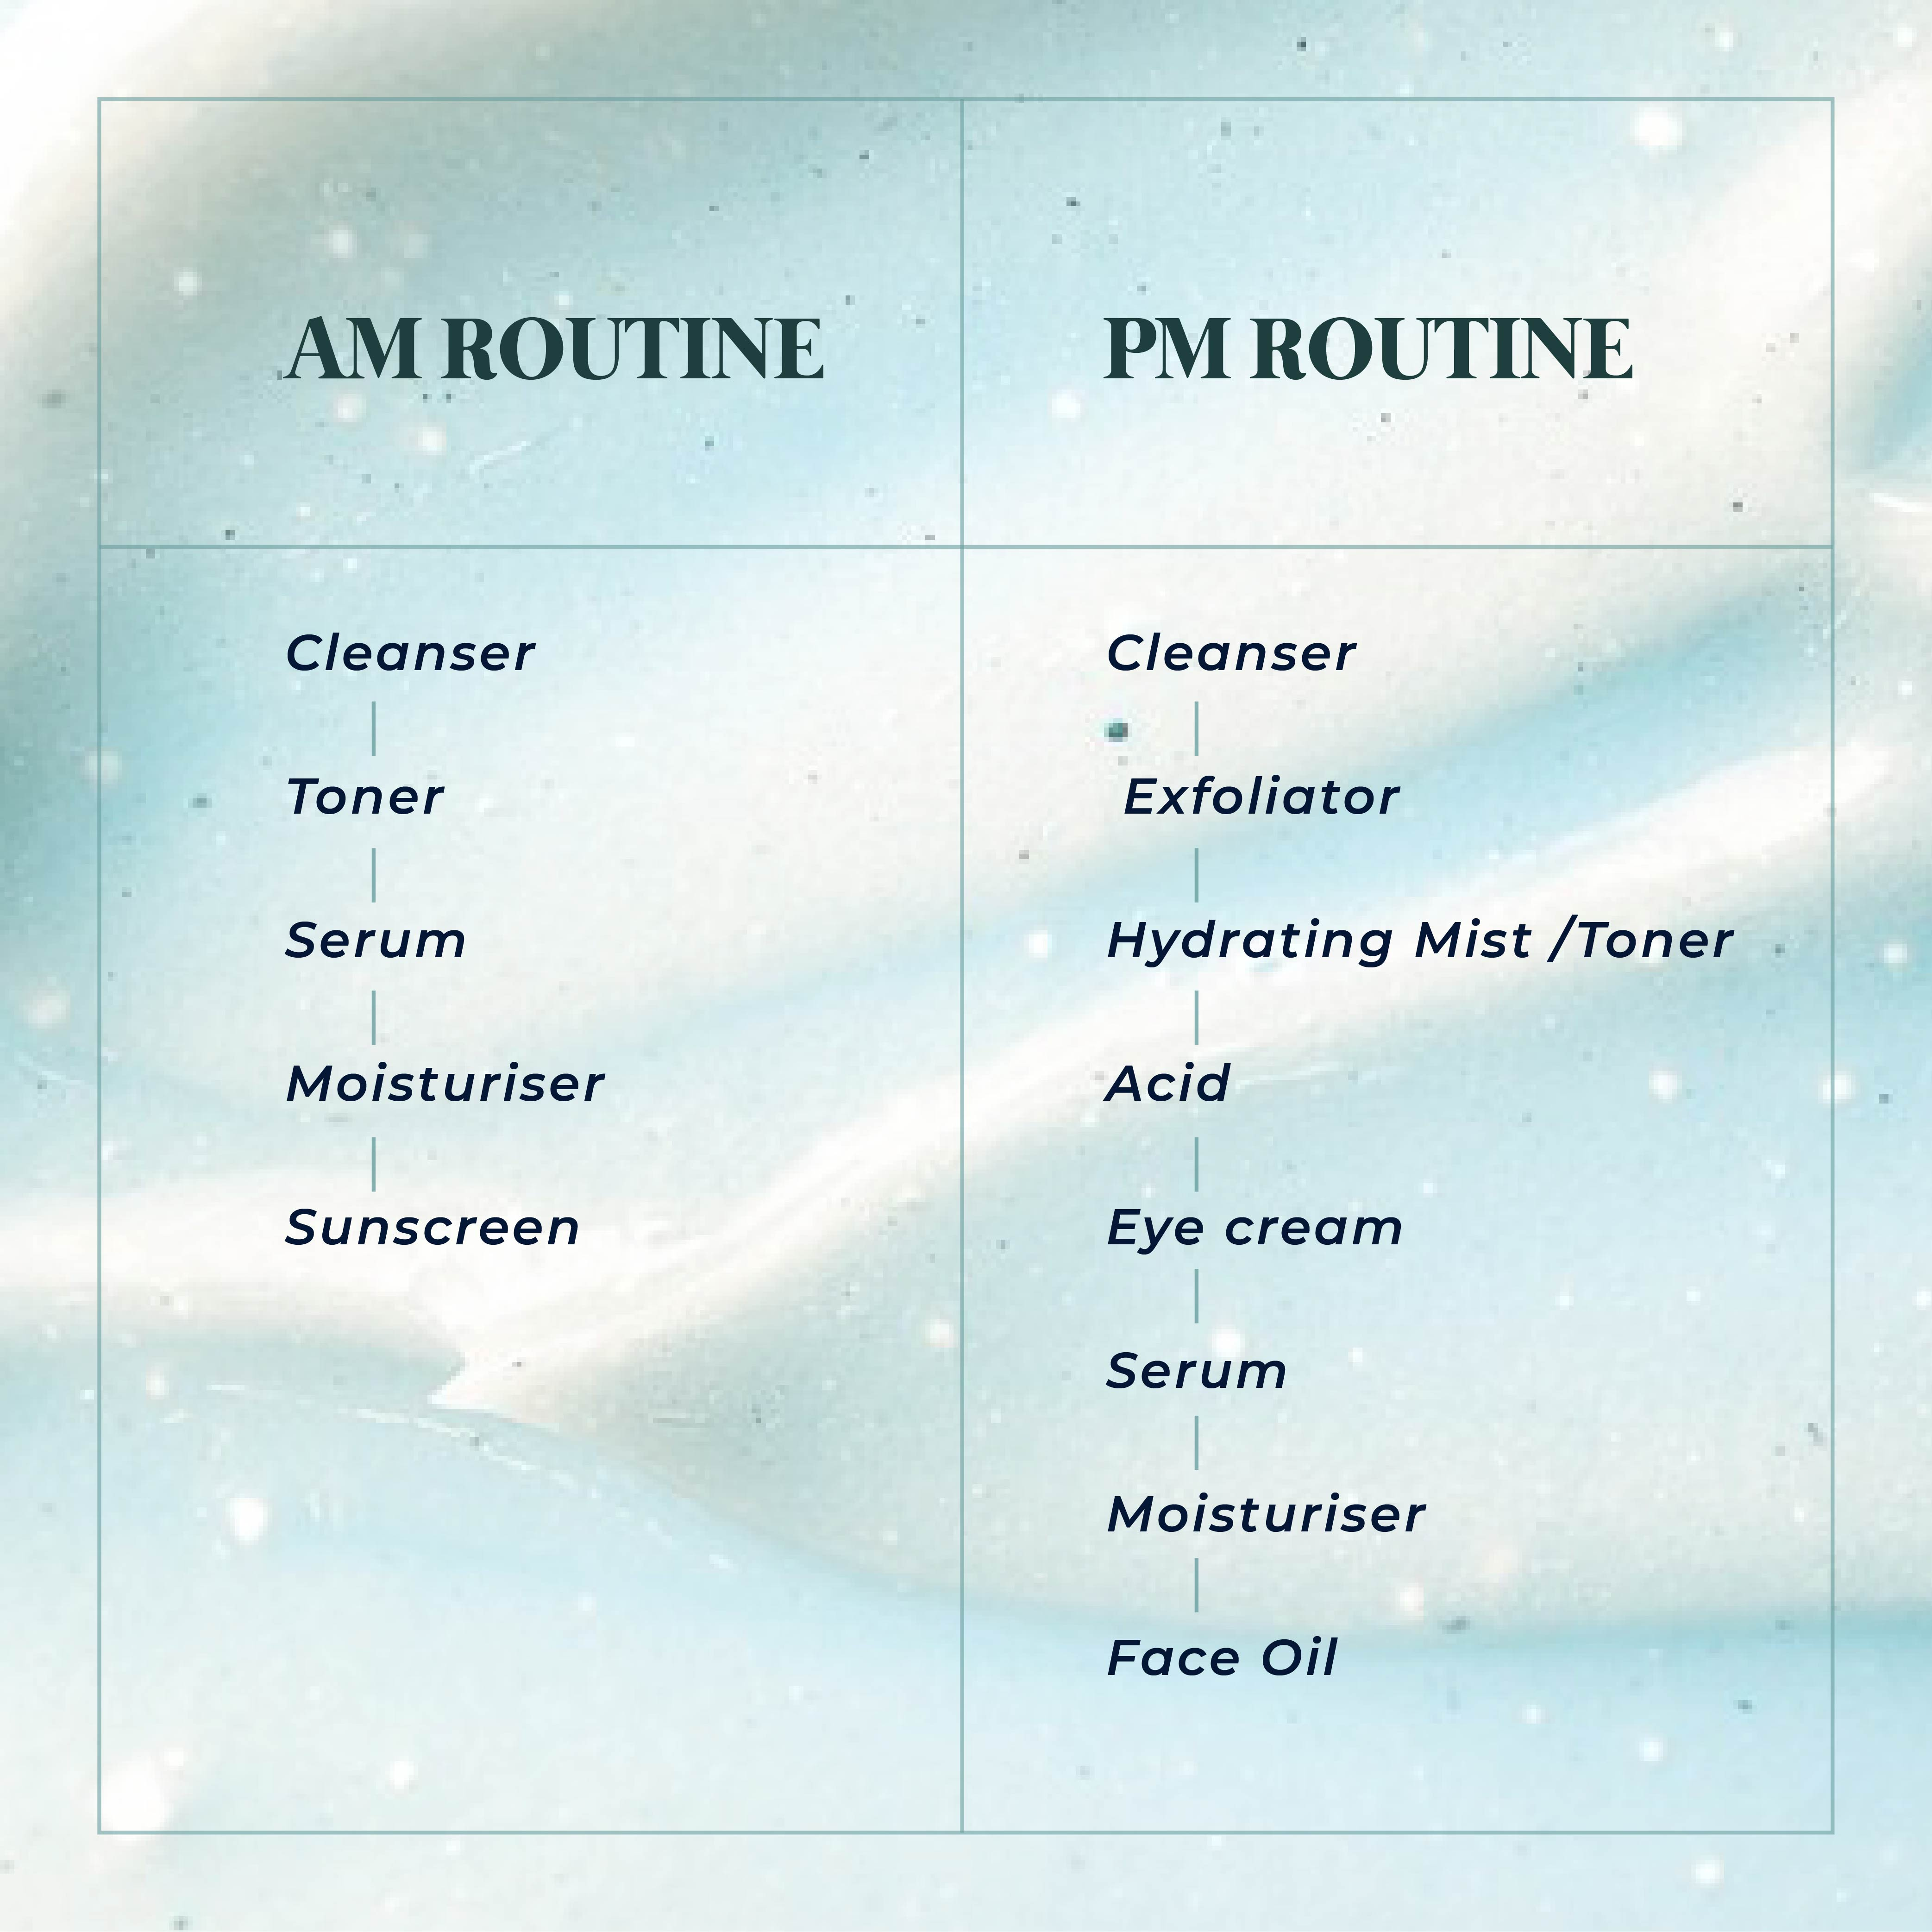 This is an image of an AM and PM skincare routine.